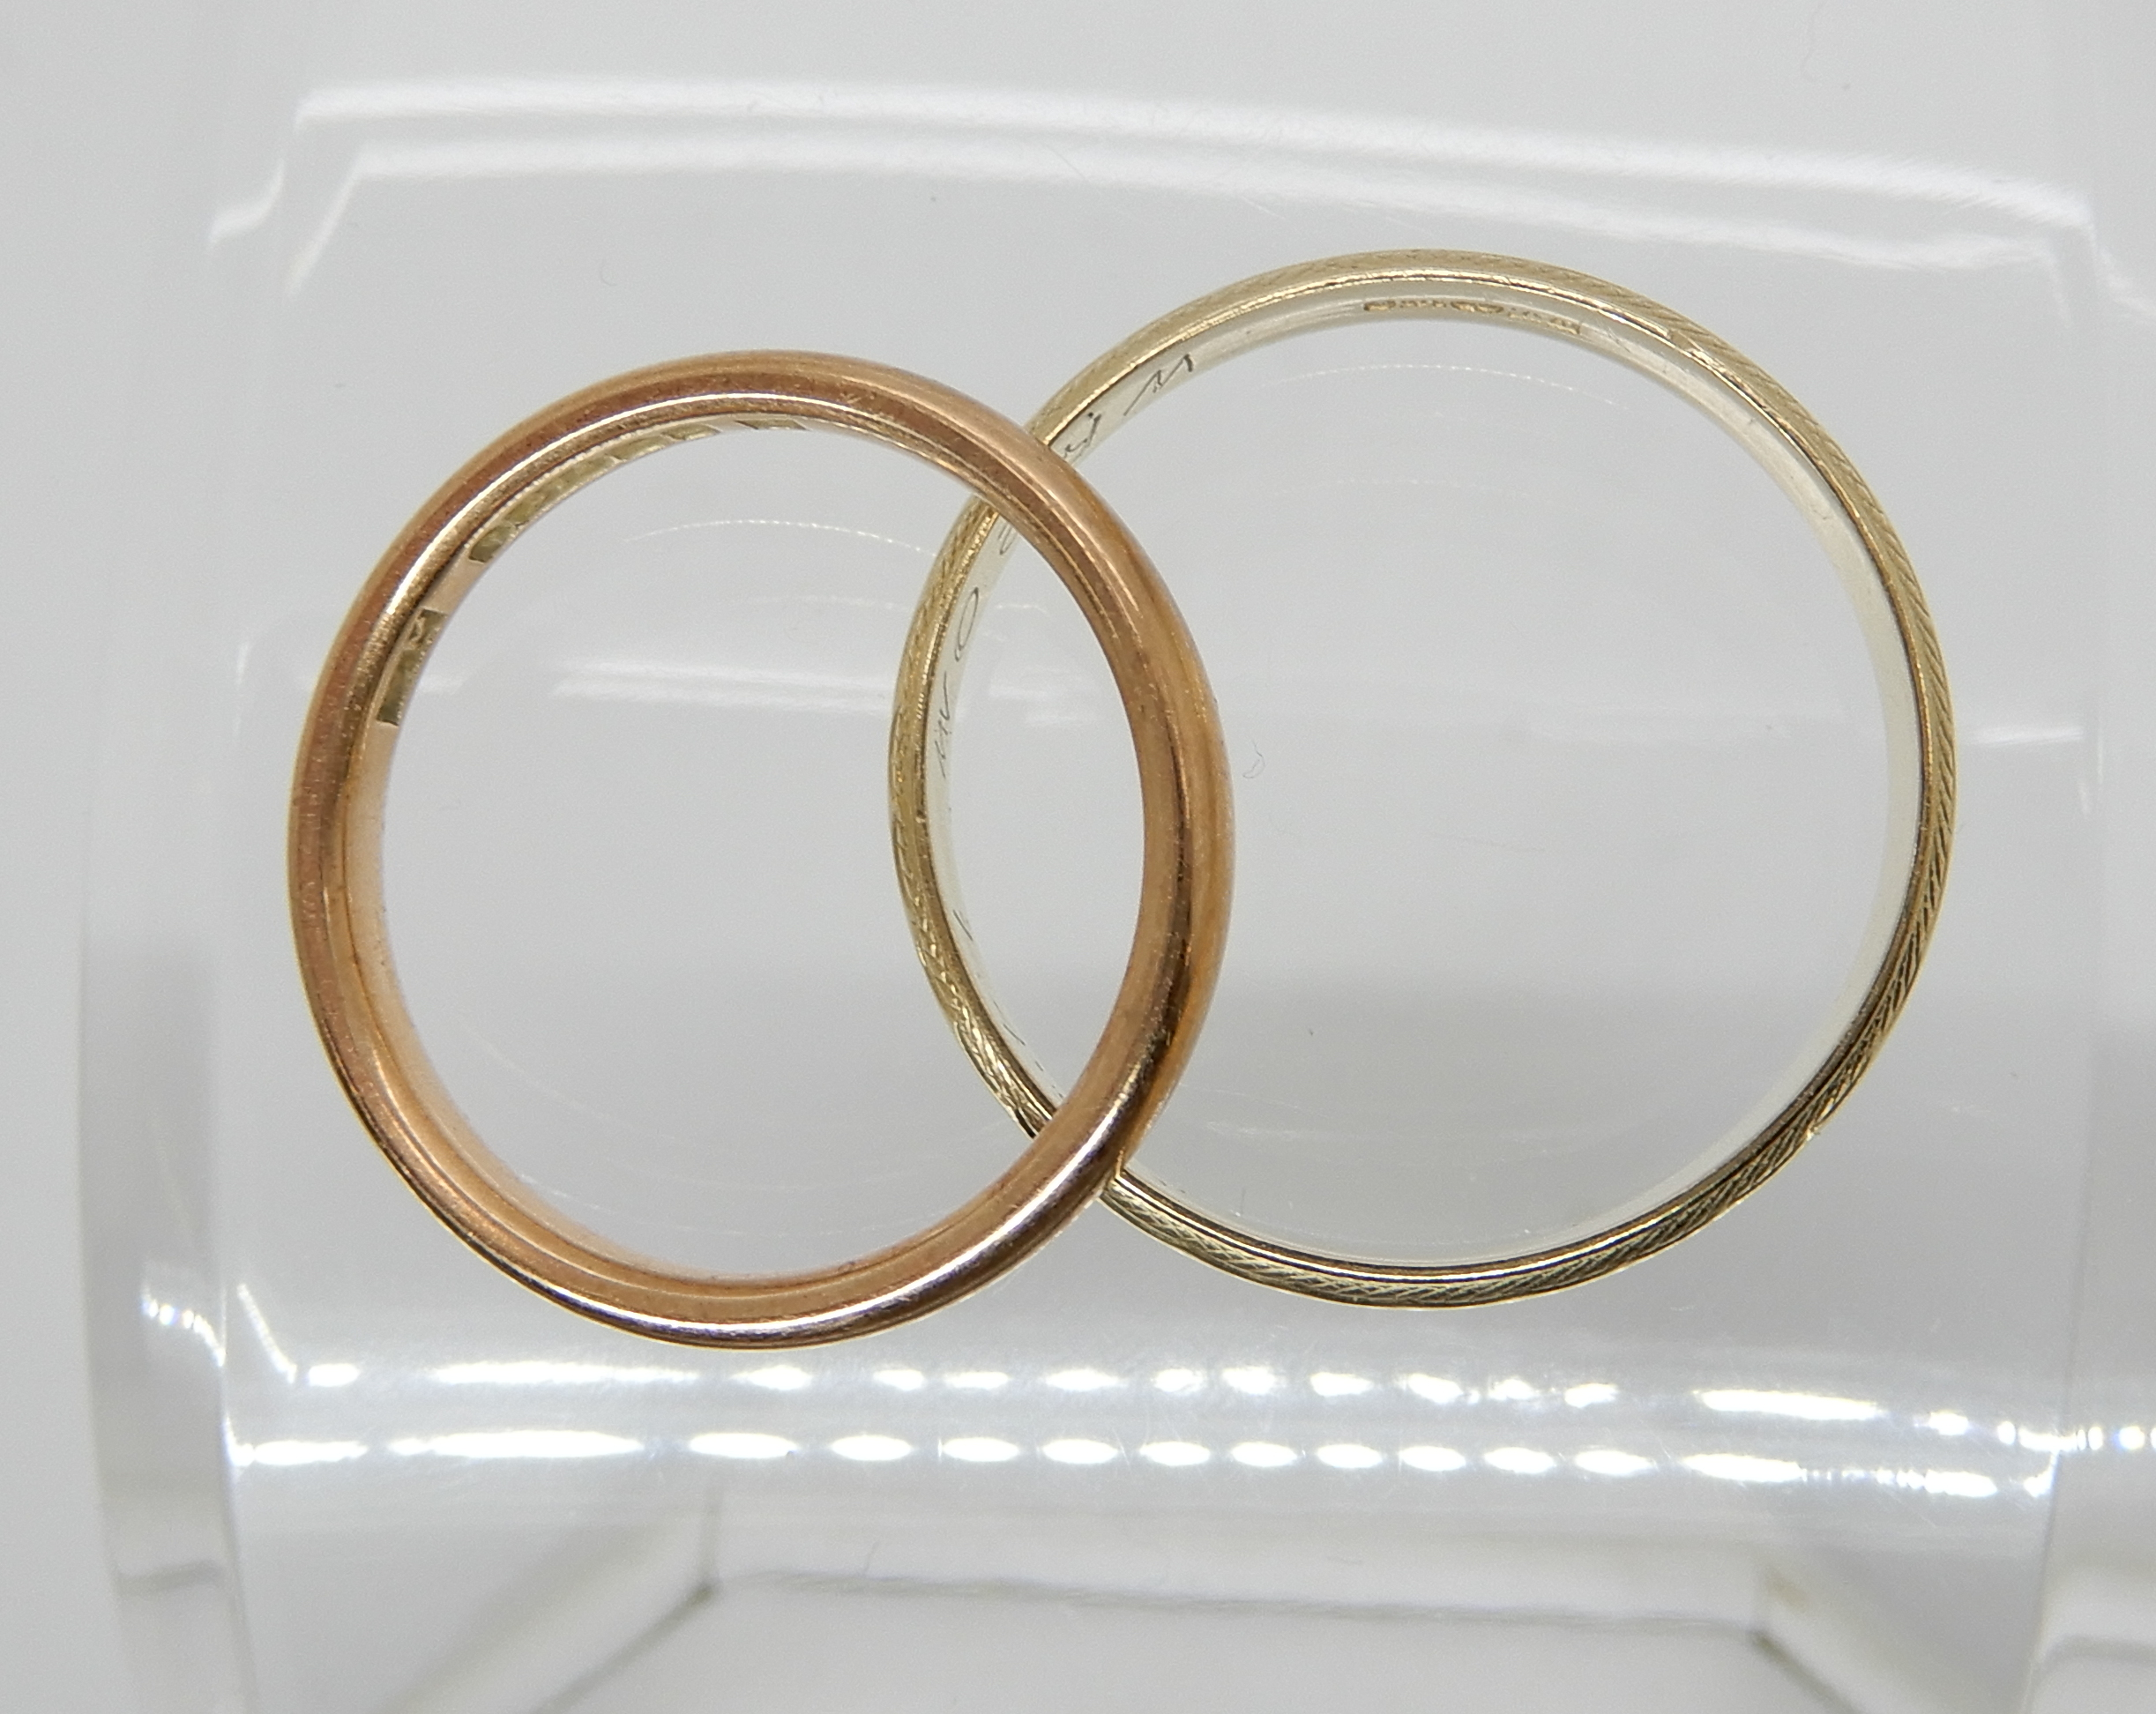 Lot 4 - A 9ct rose gold wedding ring size O and a 9ct yellow gold example size V1/2, combined weight 5gms